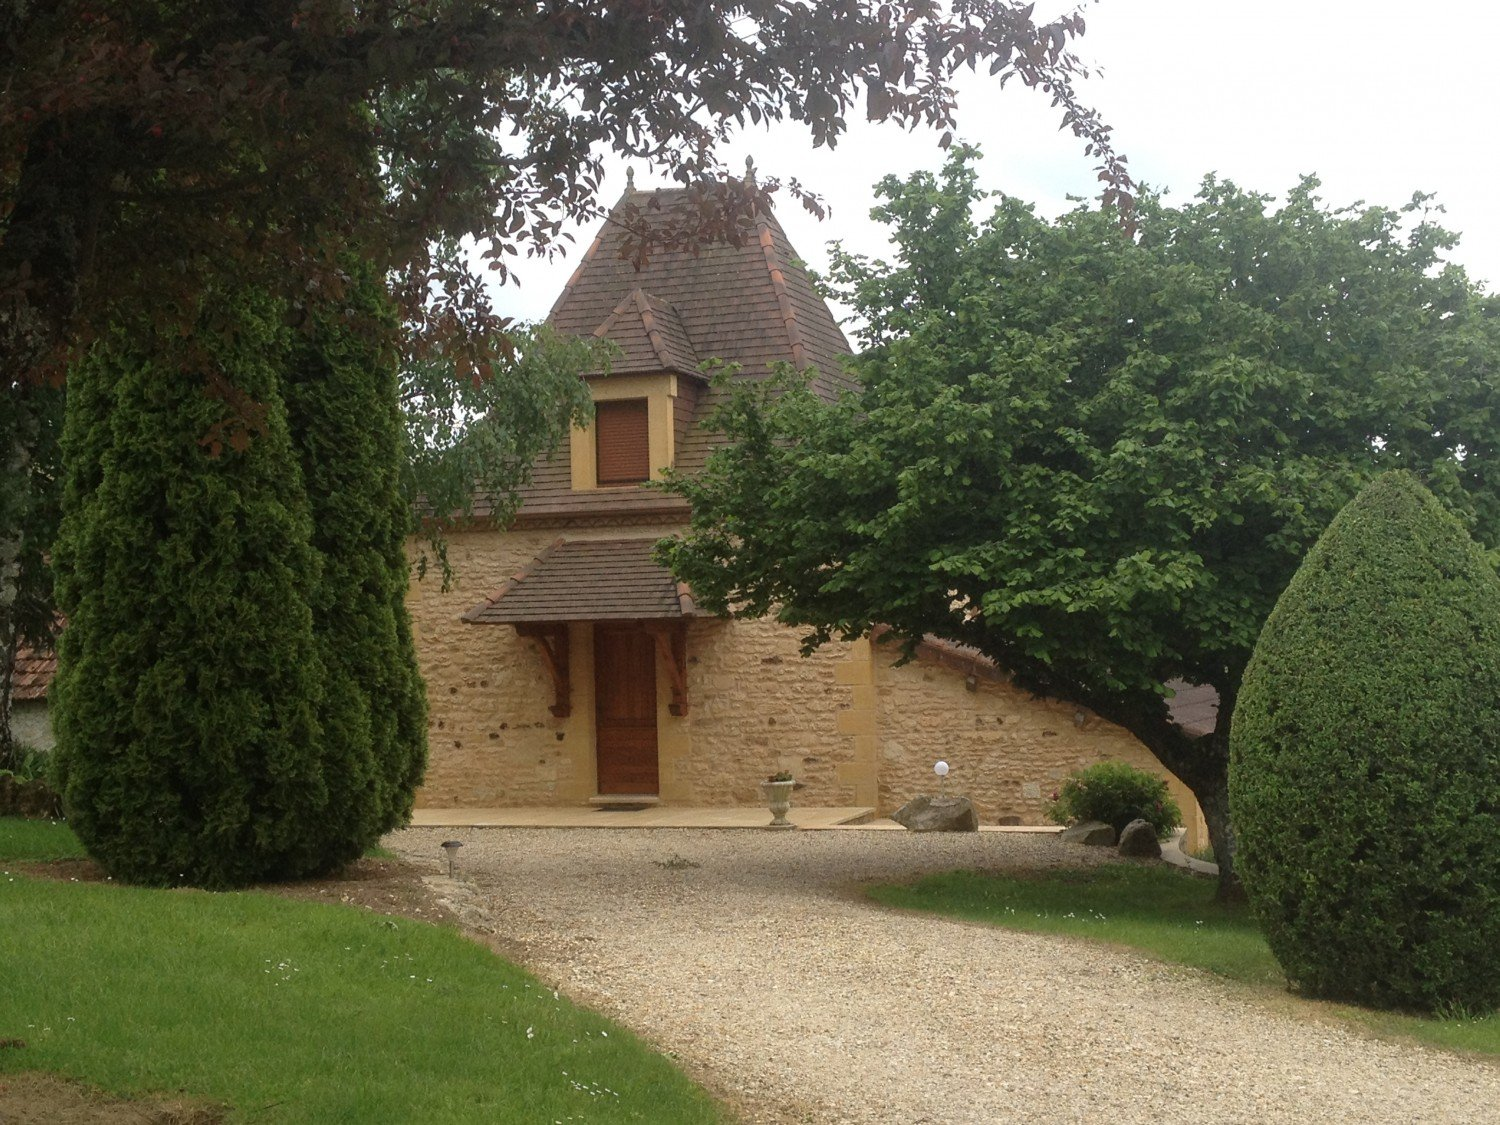 les-lavandes-holiday-cottages-in-black-perigord-dordogne